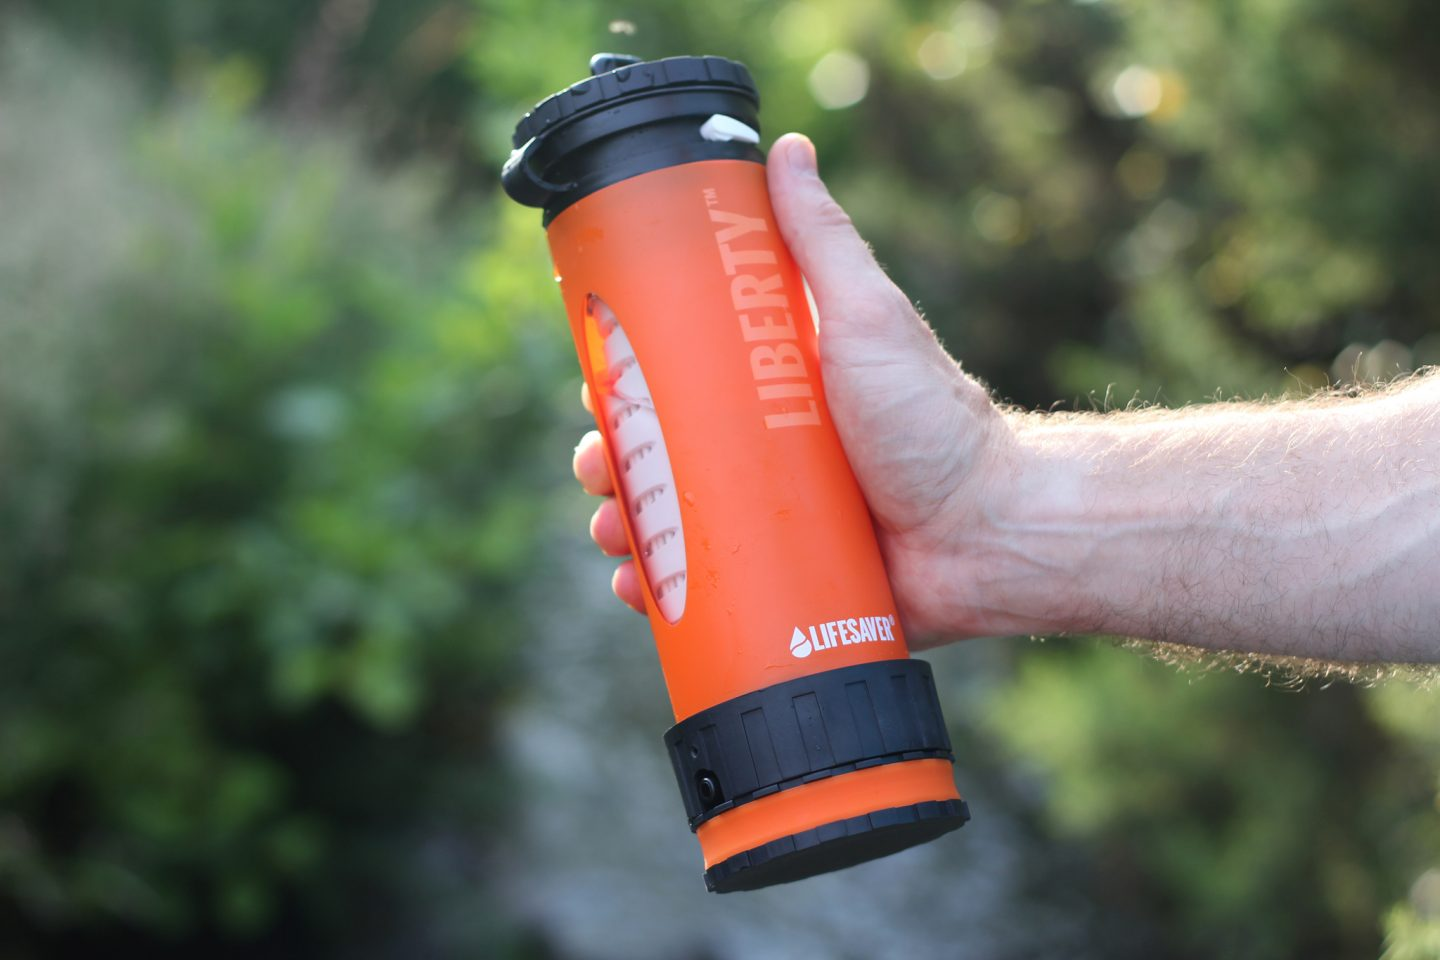 Lifesaver Liberty Portable Water Filter and Purifier Review